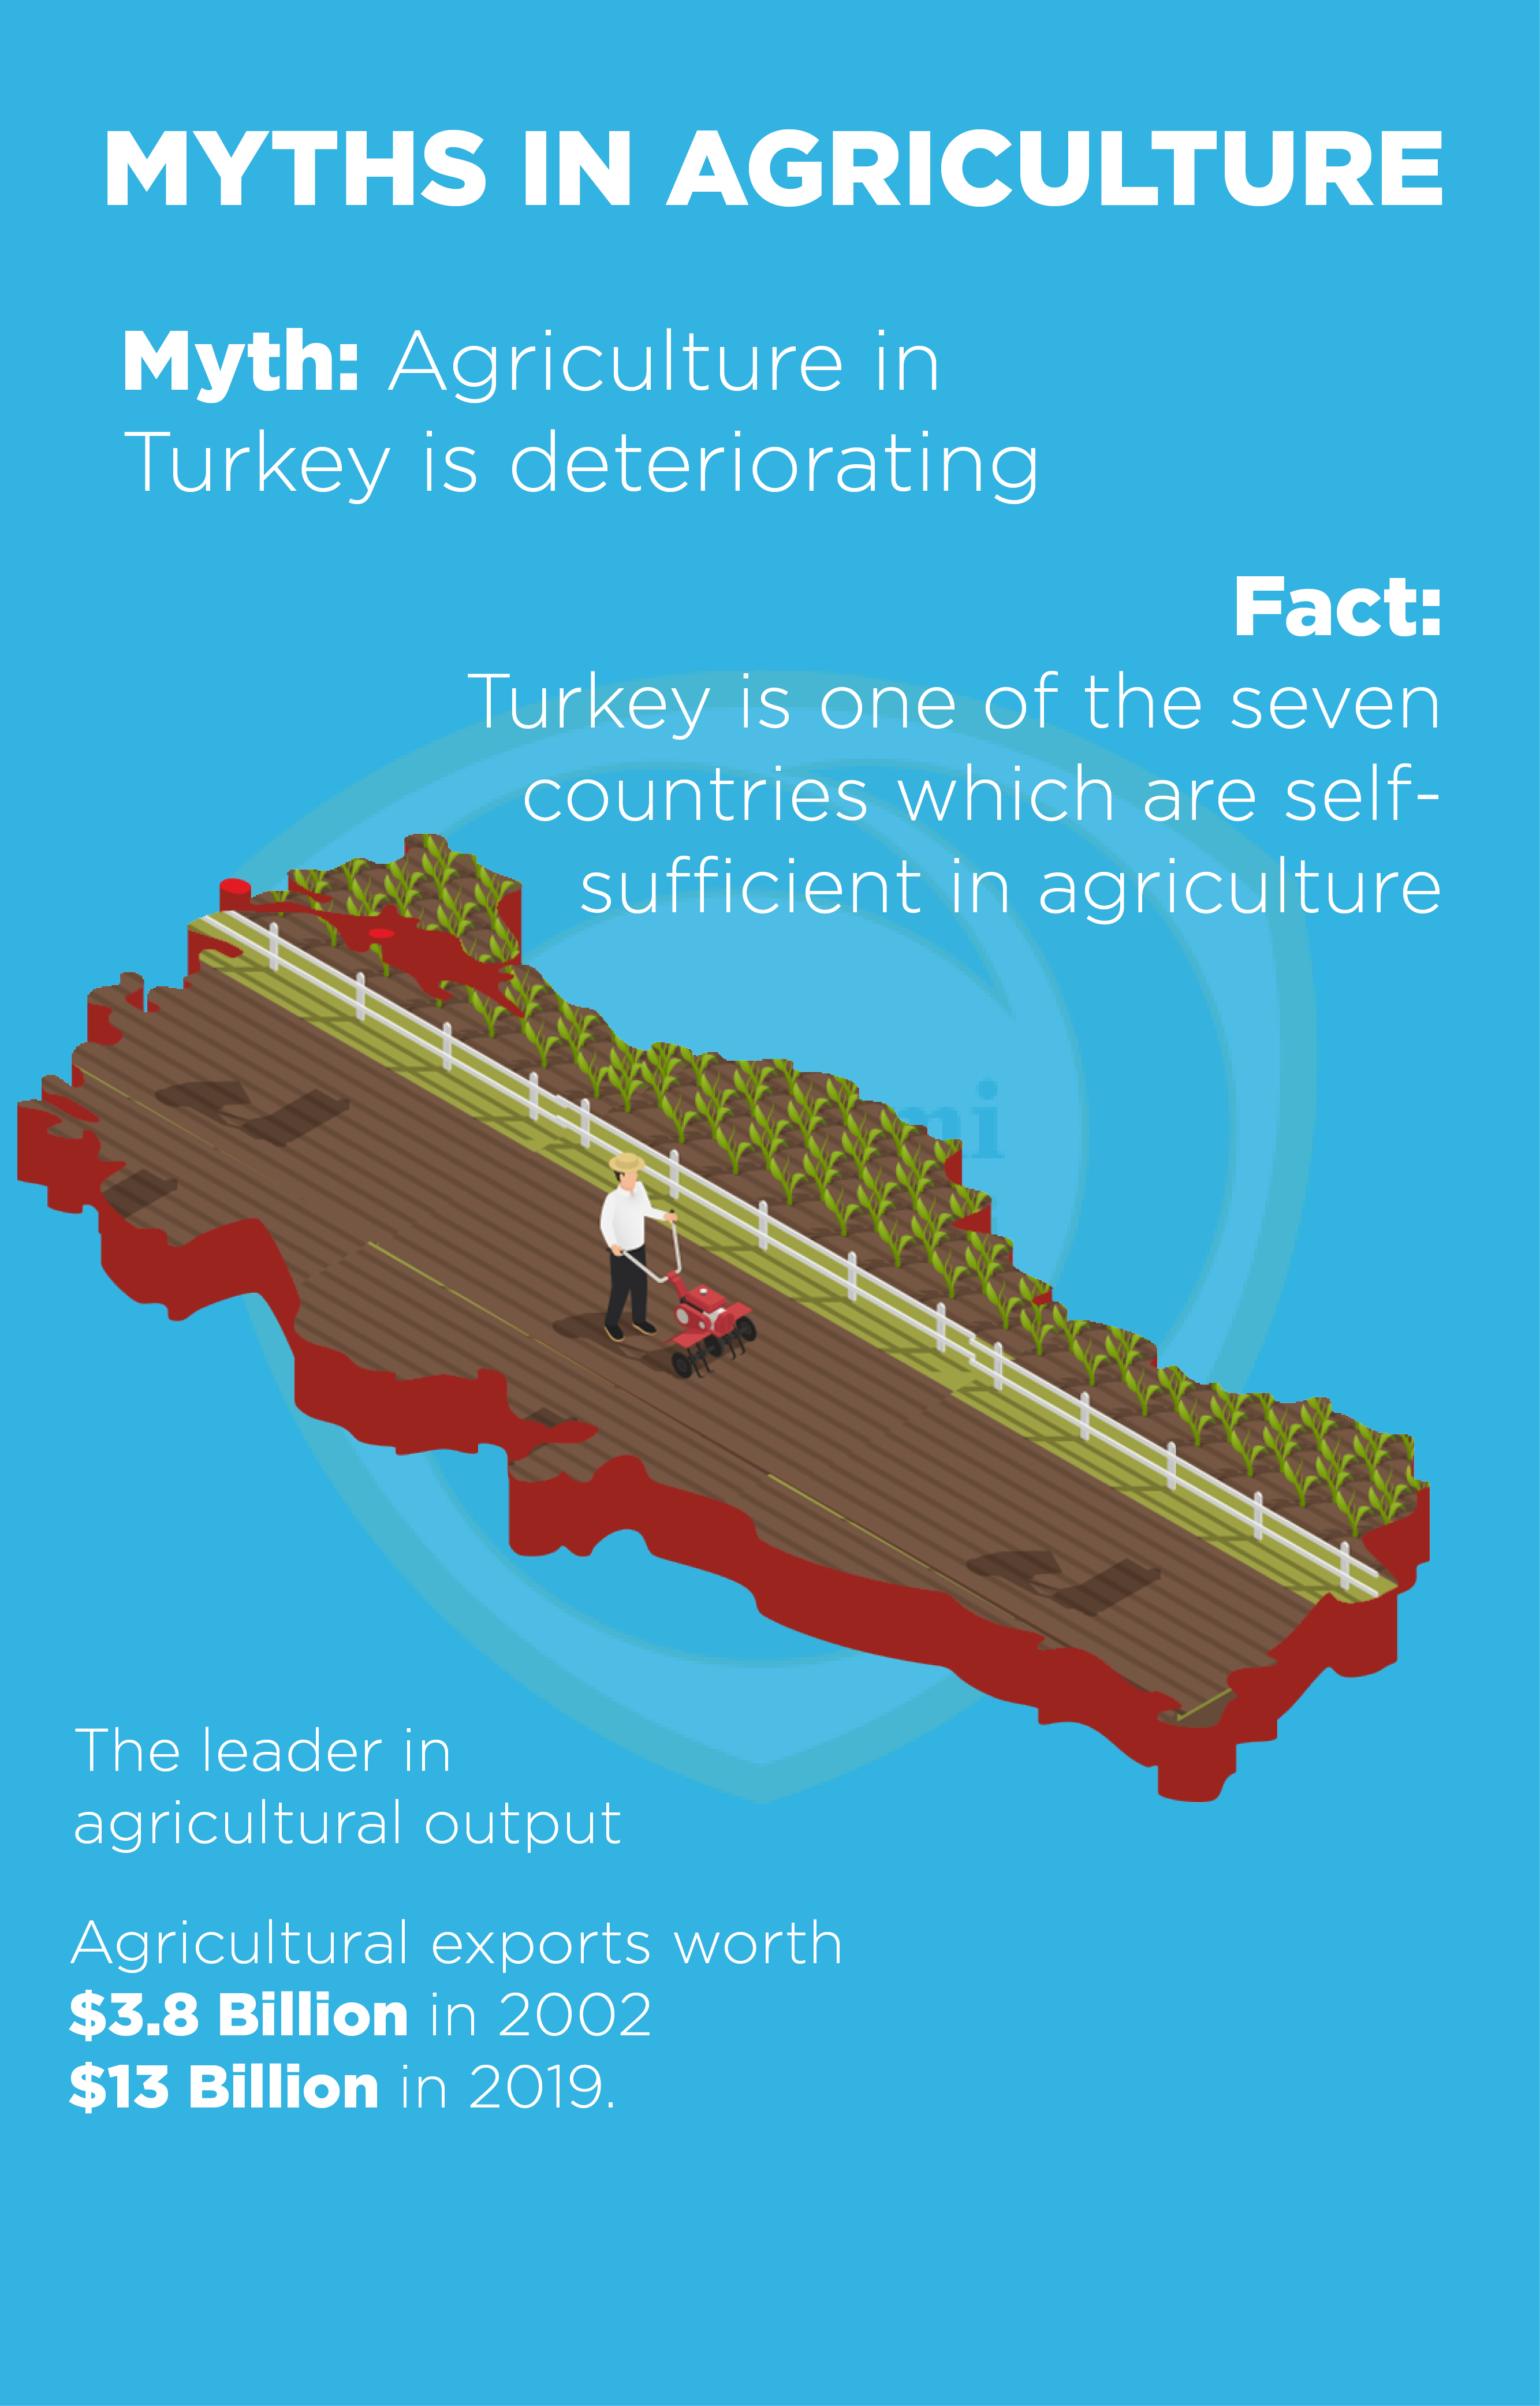 Agriculture in Turkey is growing